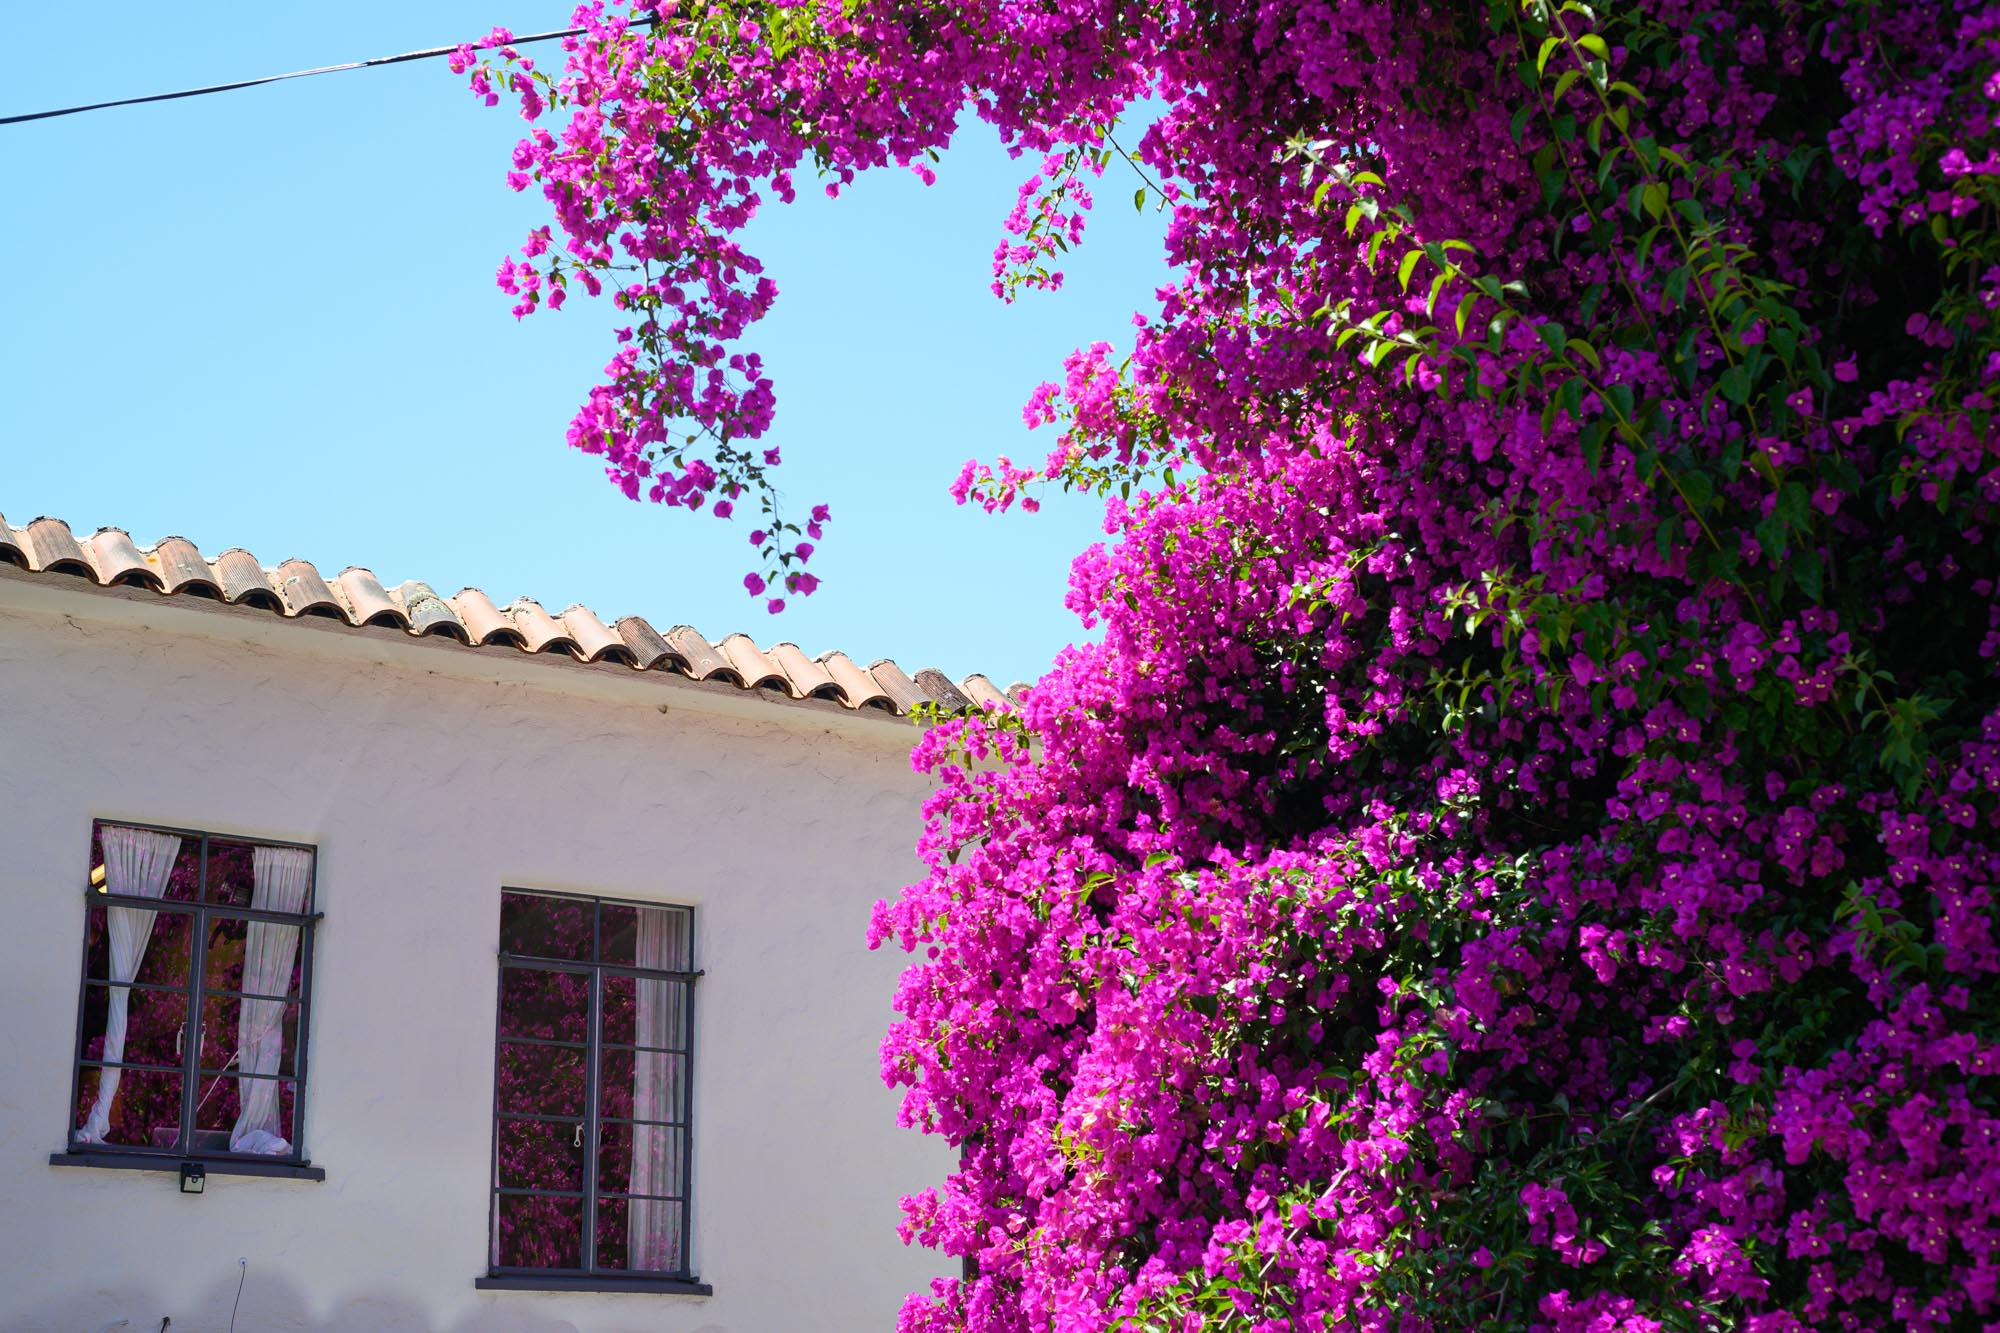 the open window of a house in California looks out on a tree full of bright purple flowers